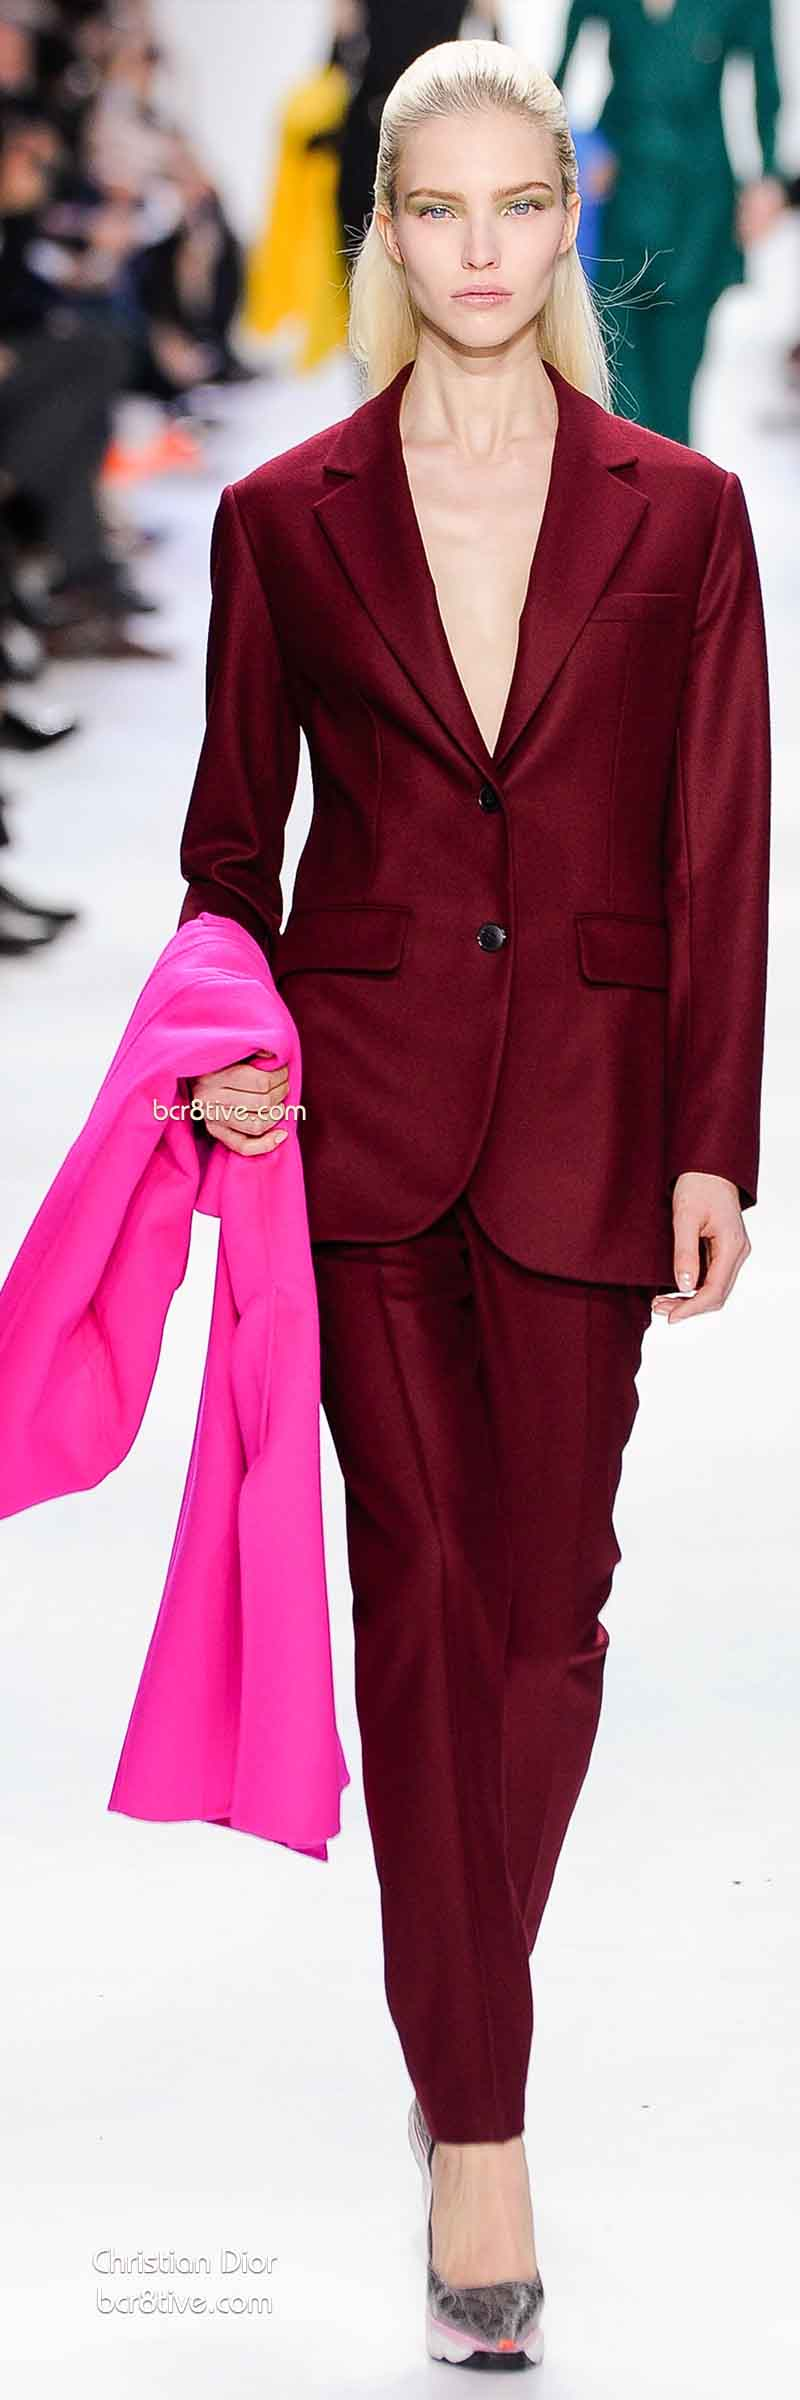 Fall 2014 Menswear Inspired Fashion - Christian Dior